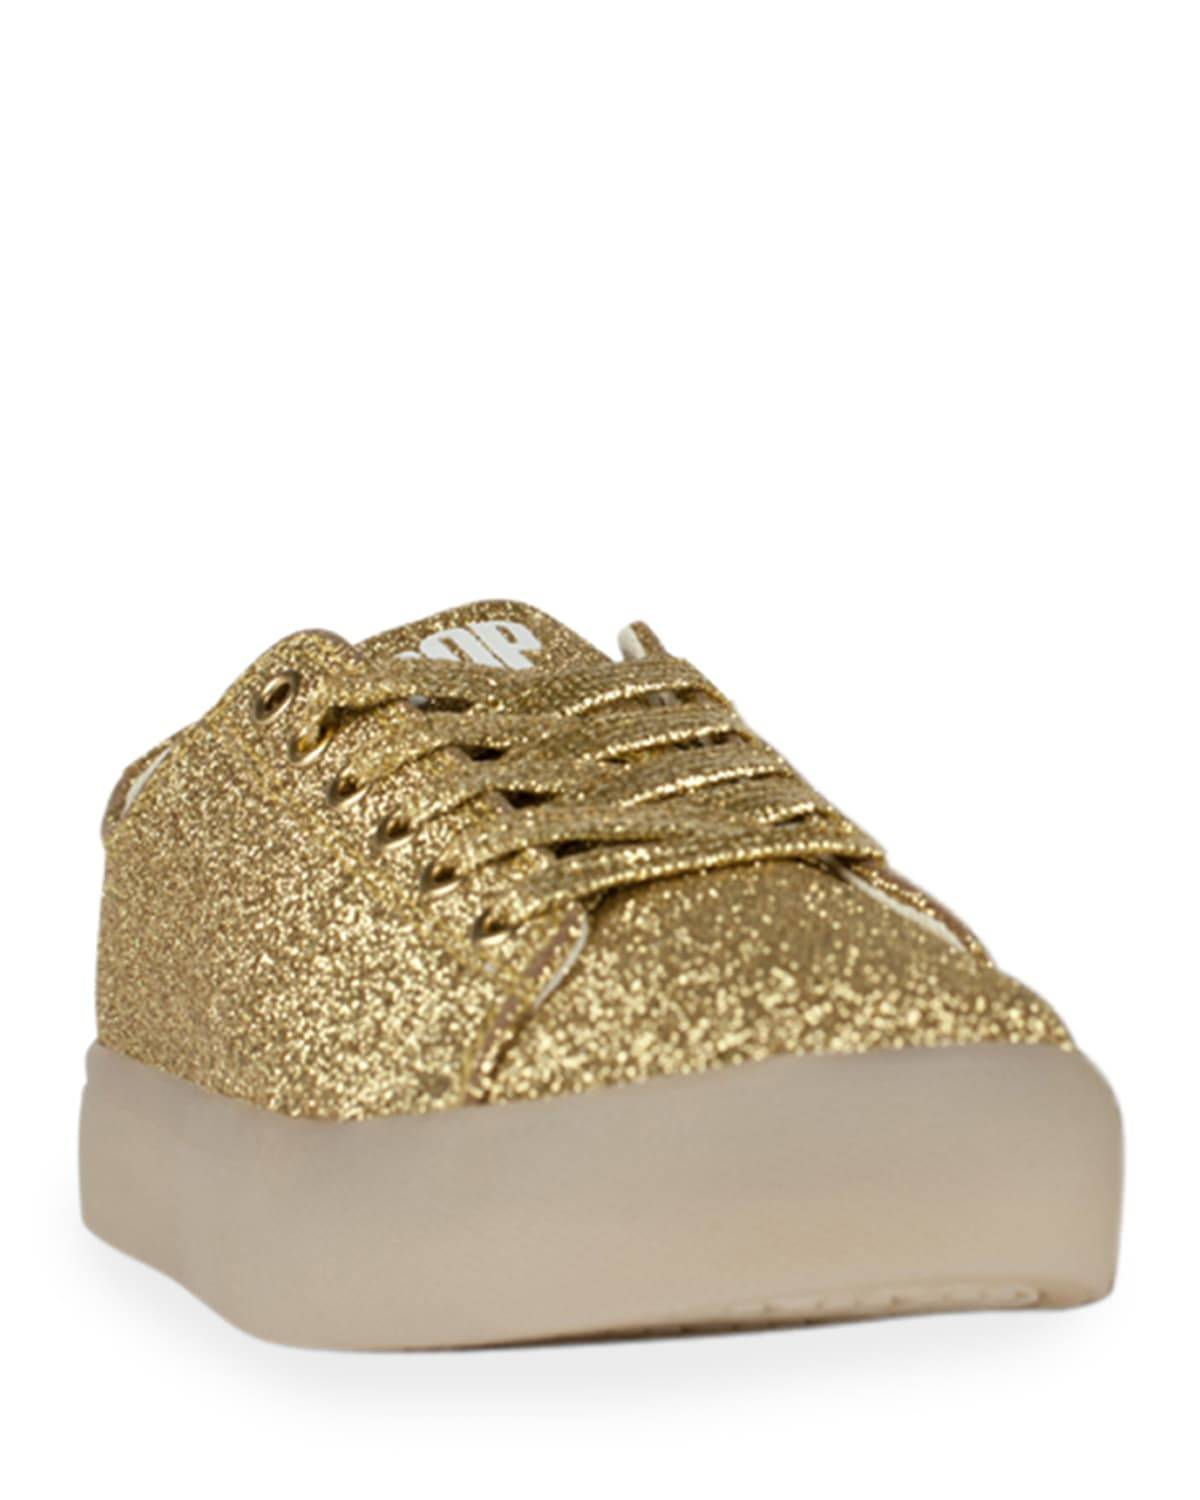 Pop Shoes EZ Glitter Light-Up Sneakers, Toddler/Kids - Size: 11 Tod - GOLD